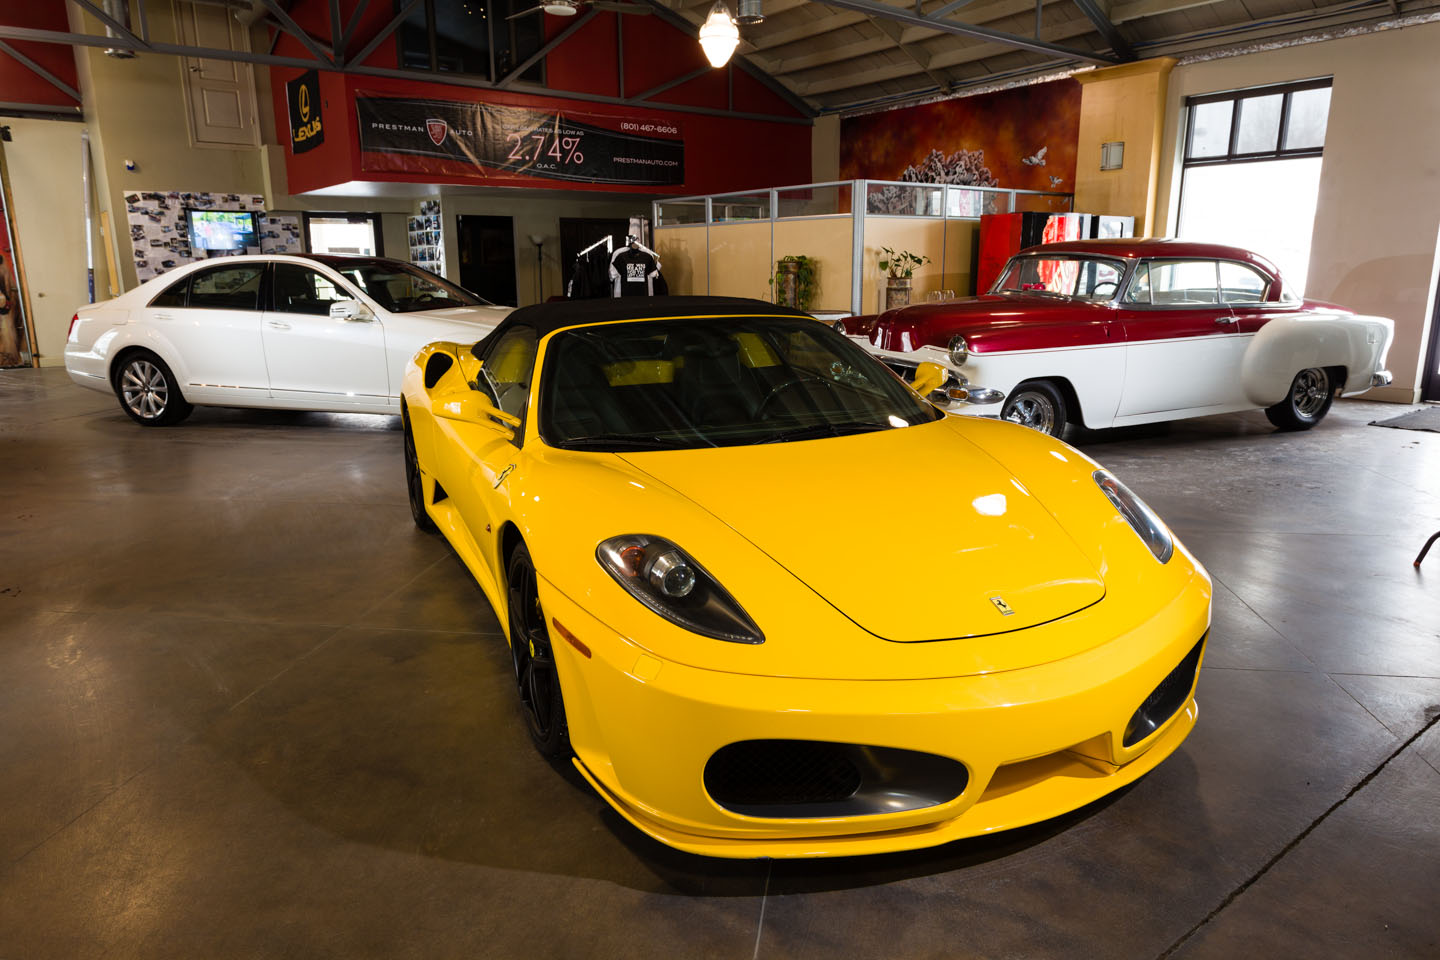 Some amazing vehicles at Prestman Auto